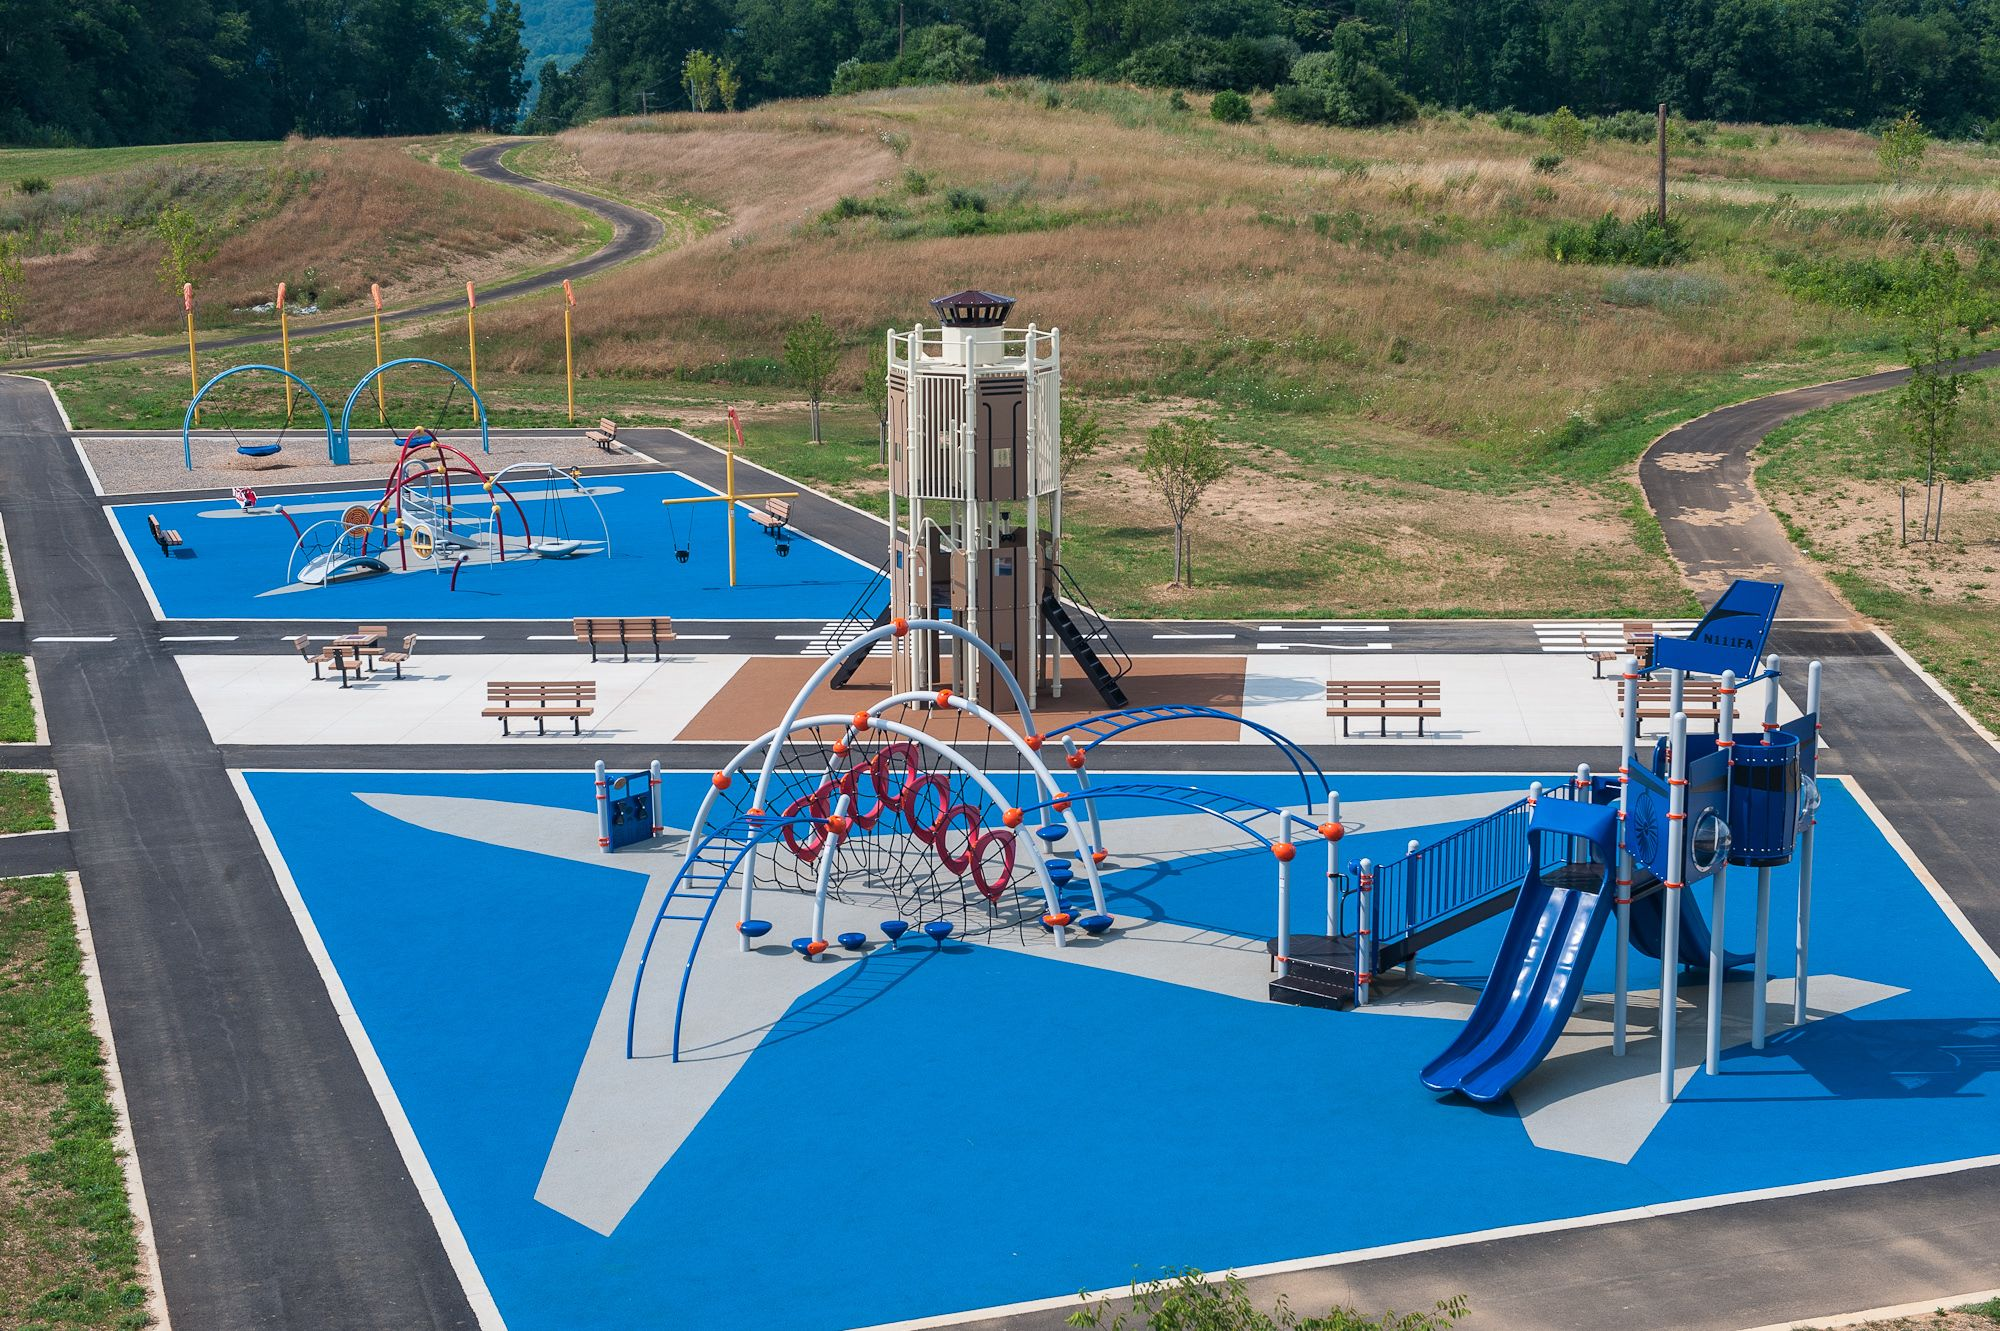 This #playground offers an airport-themed play experience ...